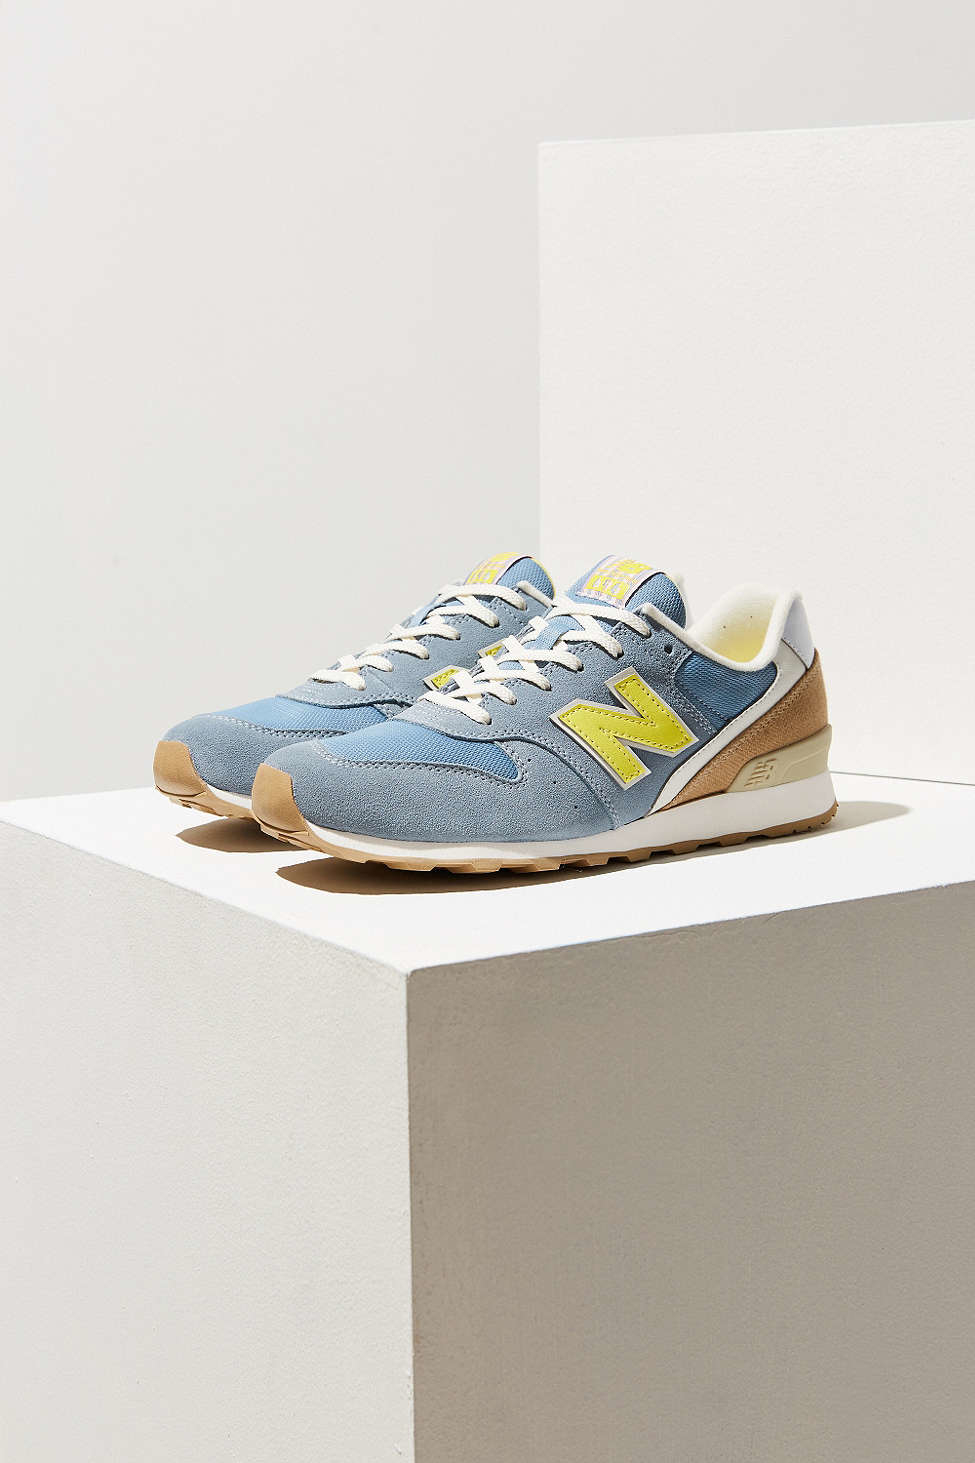 brand new f7acf ef619 New Balance 696 Lakeview Running Sneaker in Blue - Lyst